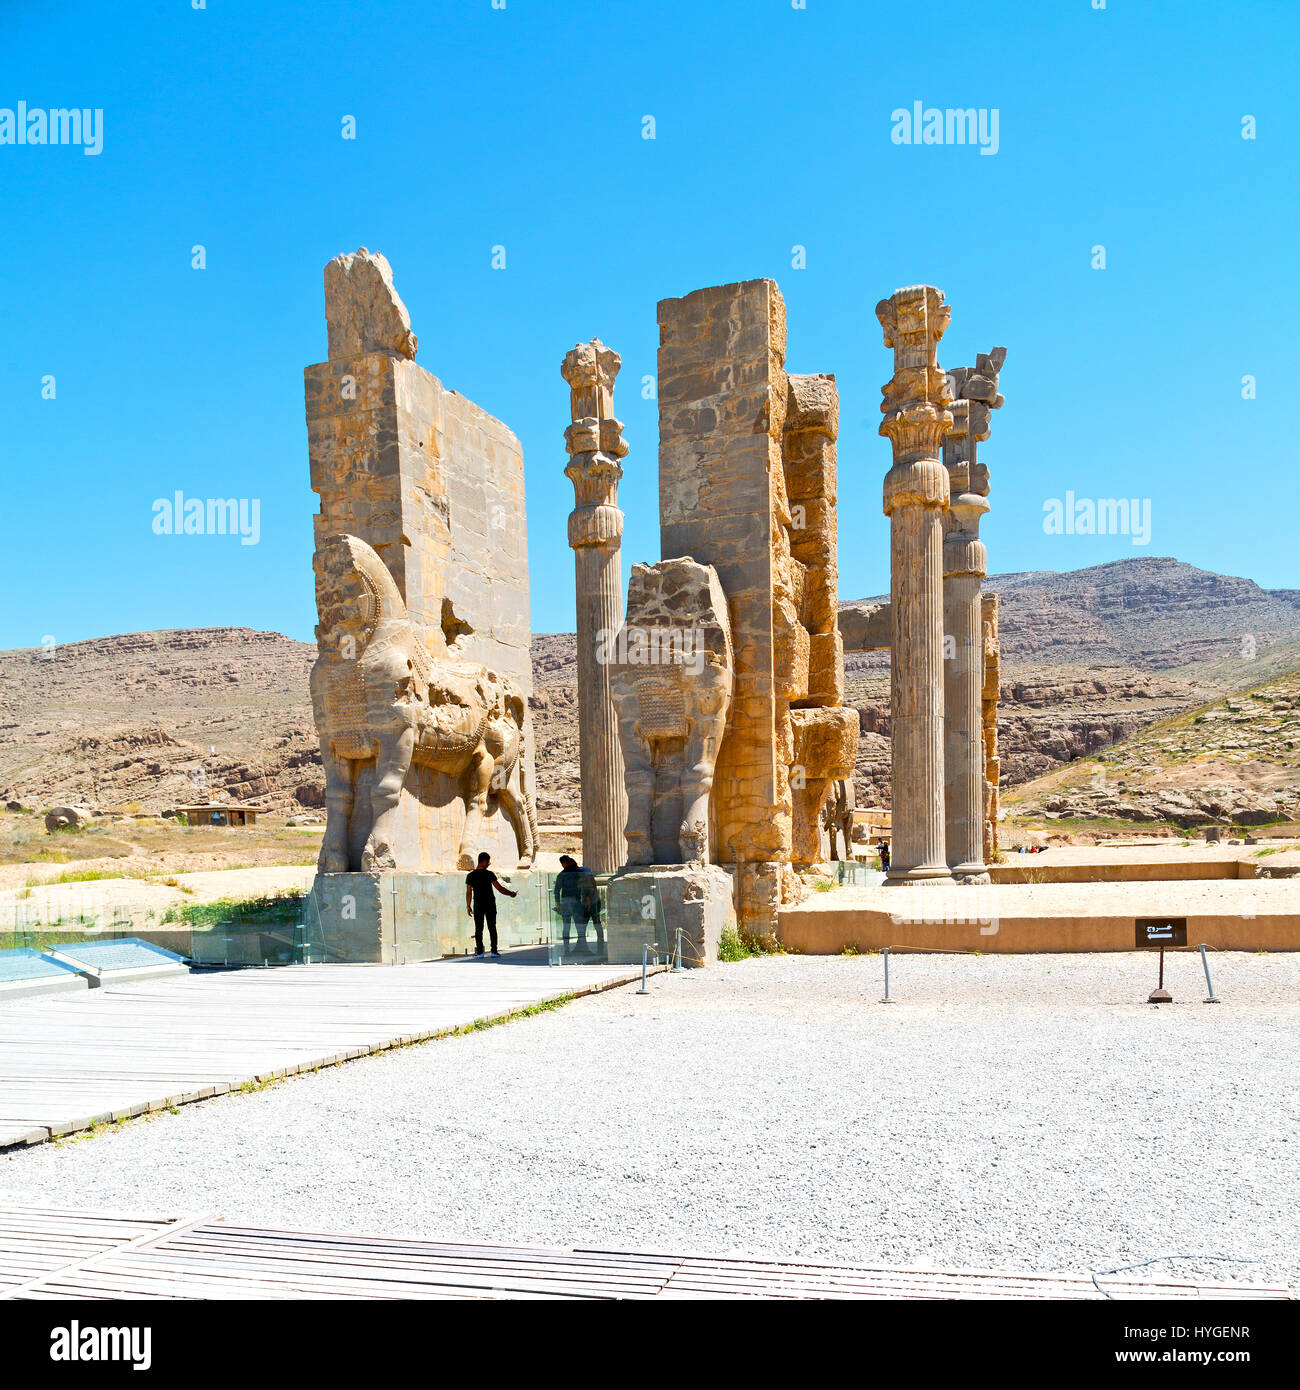 In Iran Persepolis The Old Ruins Historical Destination Monuments And Stock Photo Alamy